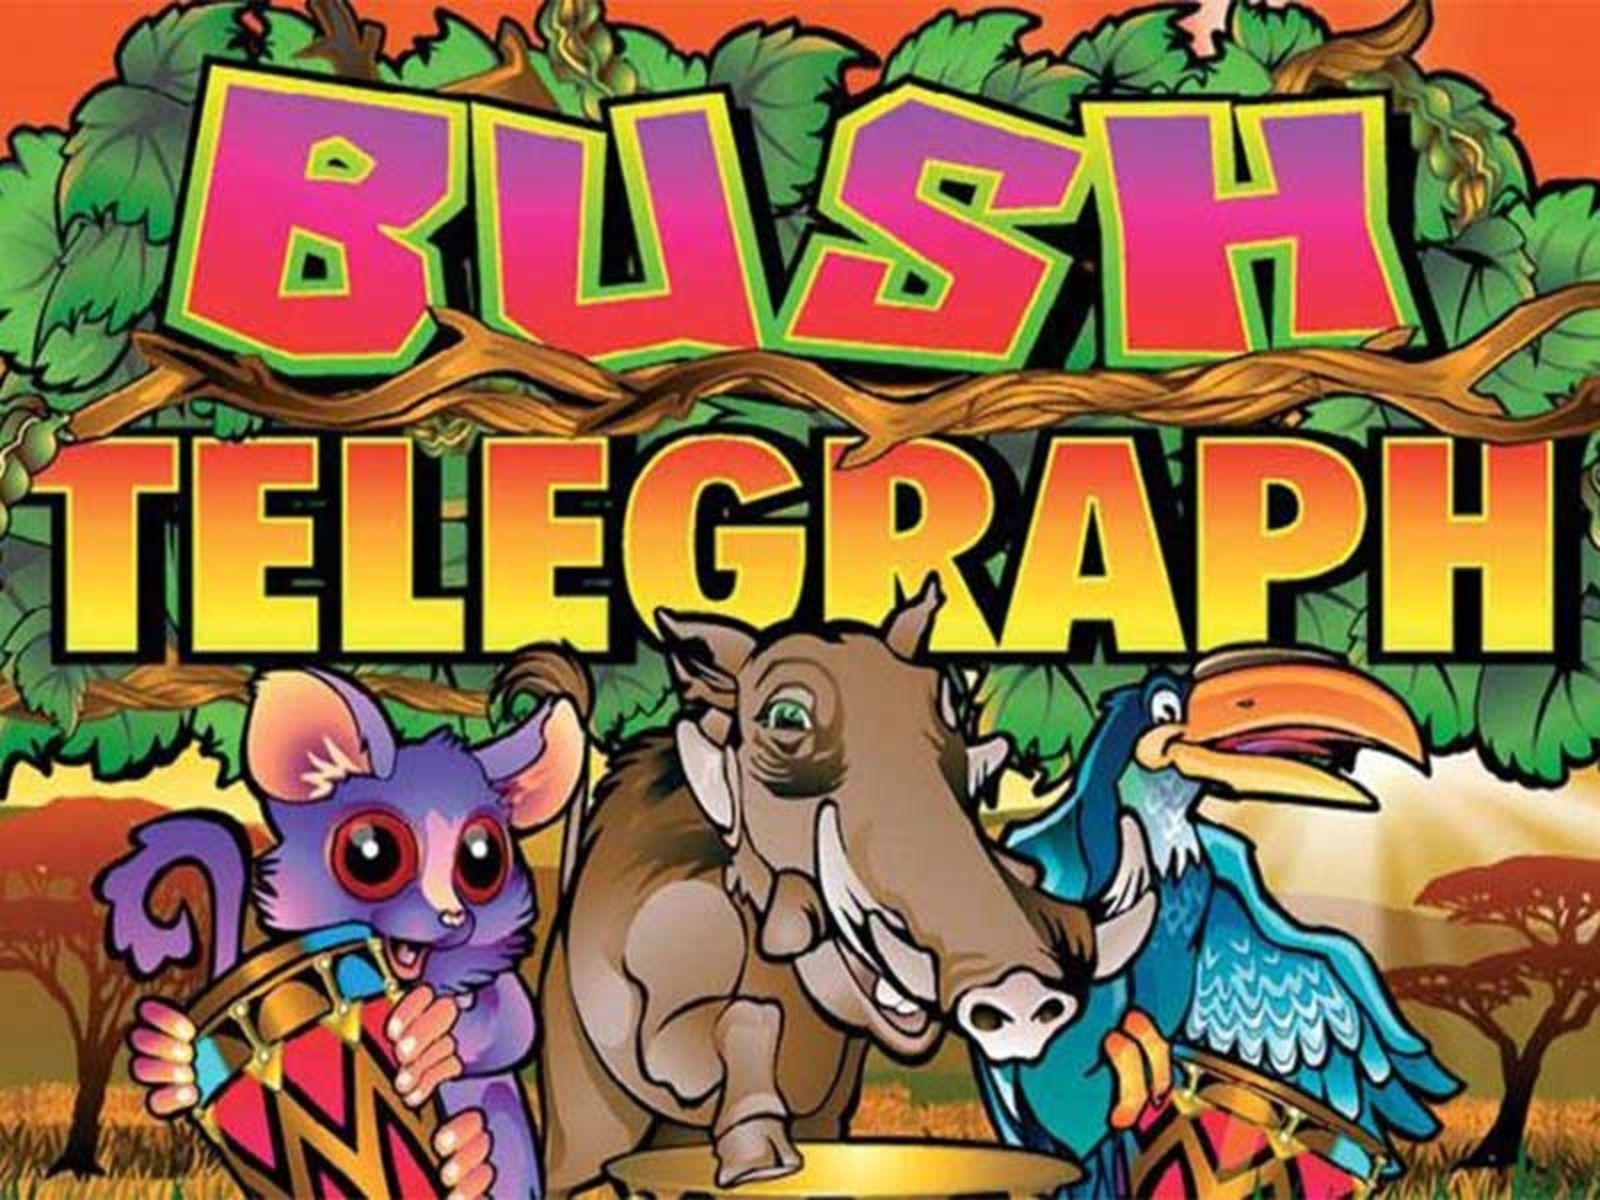 The Bush Telegraph Online Slot Demo Game by Microgaming